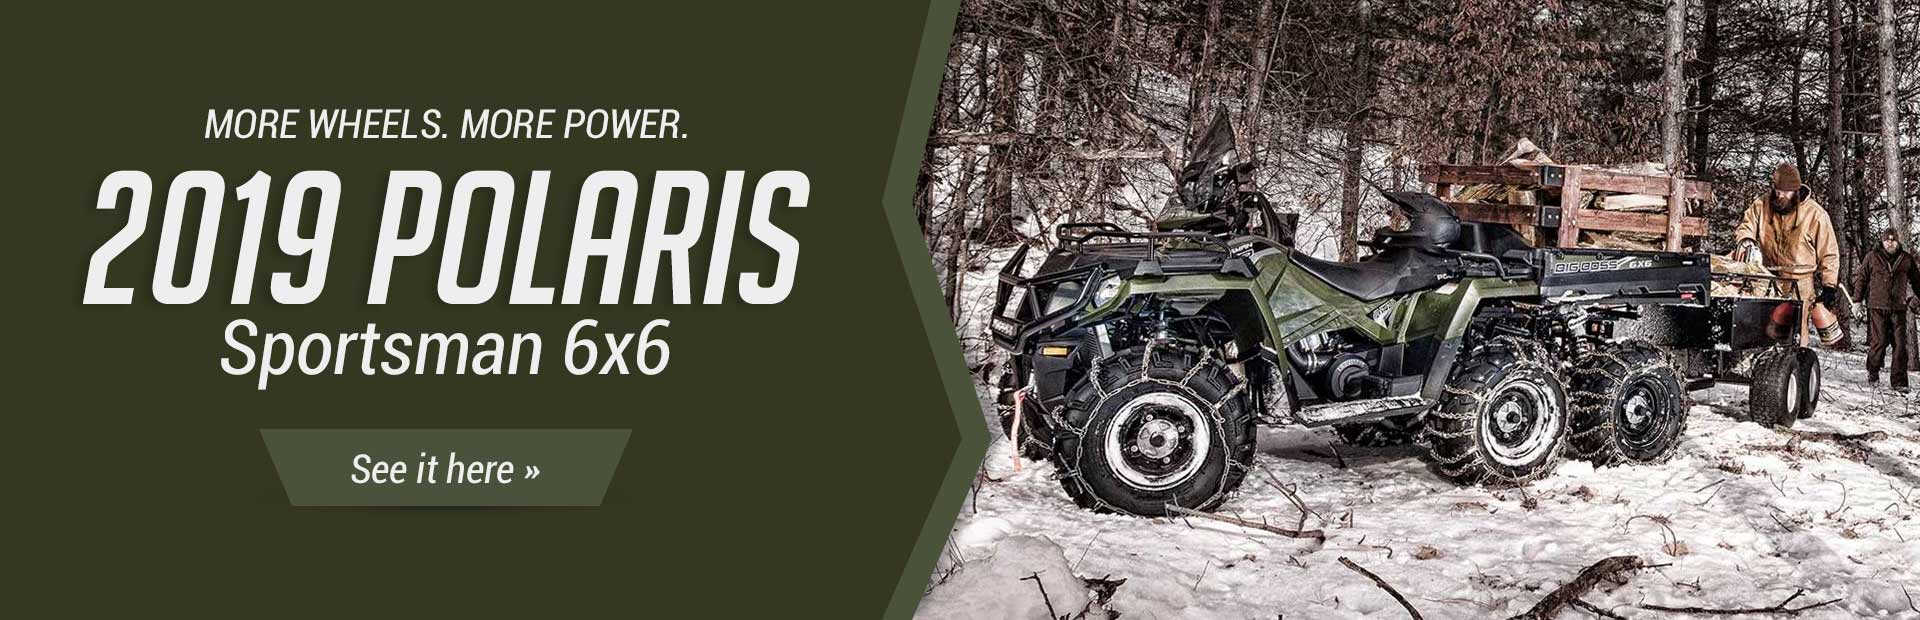 Polaris Dealers Alberta >> Polaris Arctic Cat Dealer Mighty Peace Powersports Rv